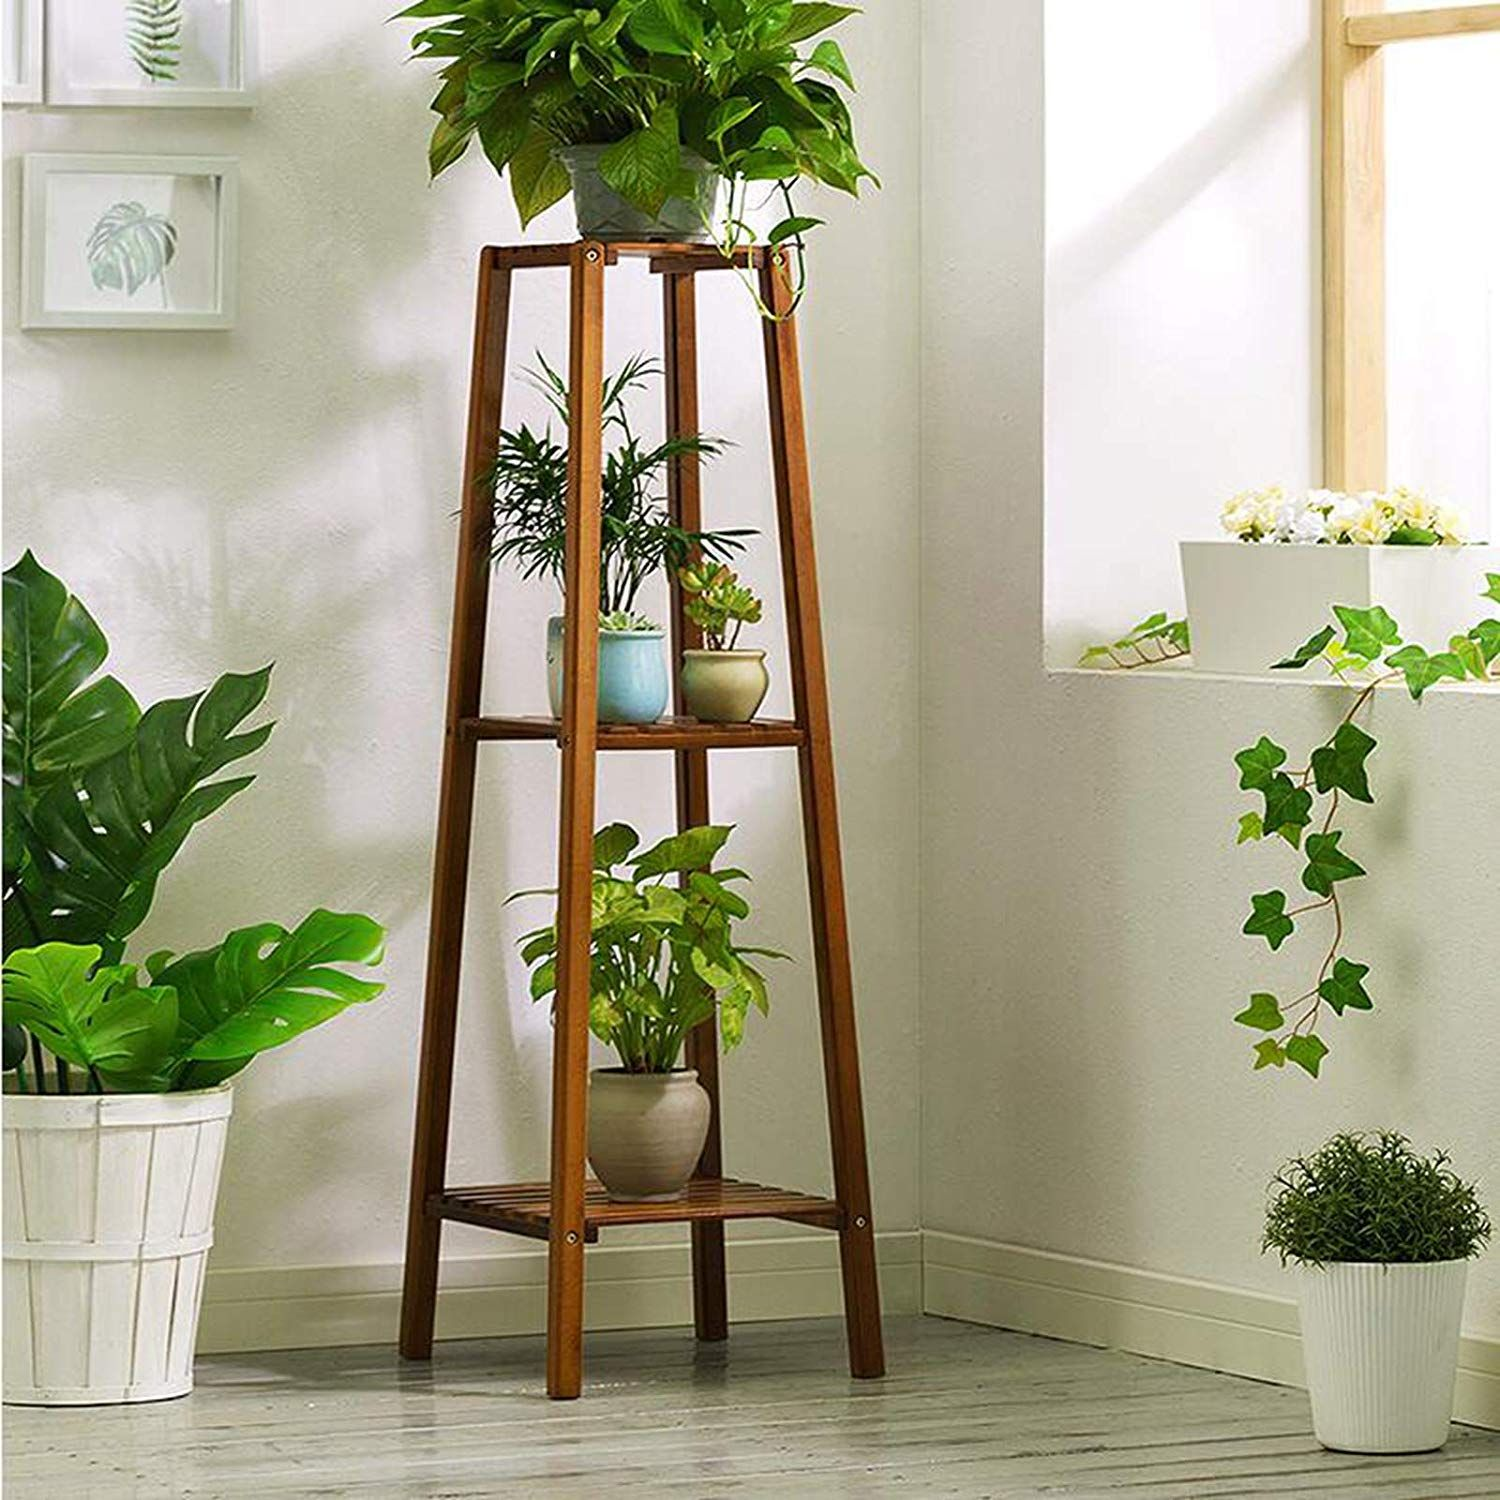 Magshion Bamboo 3 Tier Tall Plant Stand Pot Holder Small Space Table Walmart Com In 2020 Tall Plant Stands Plant Stand Wooden Plant Stands